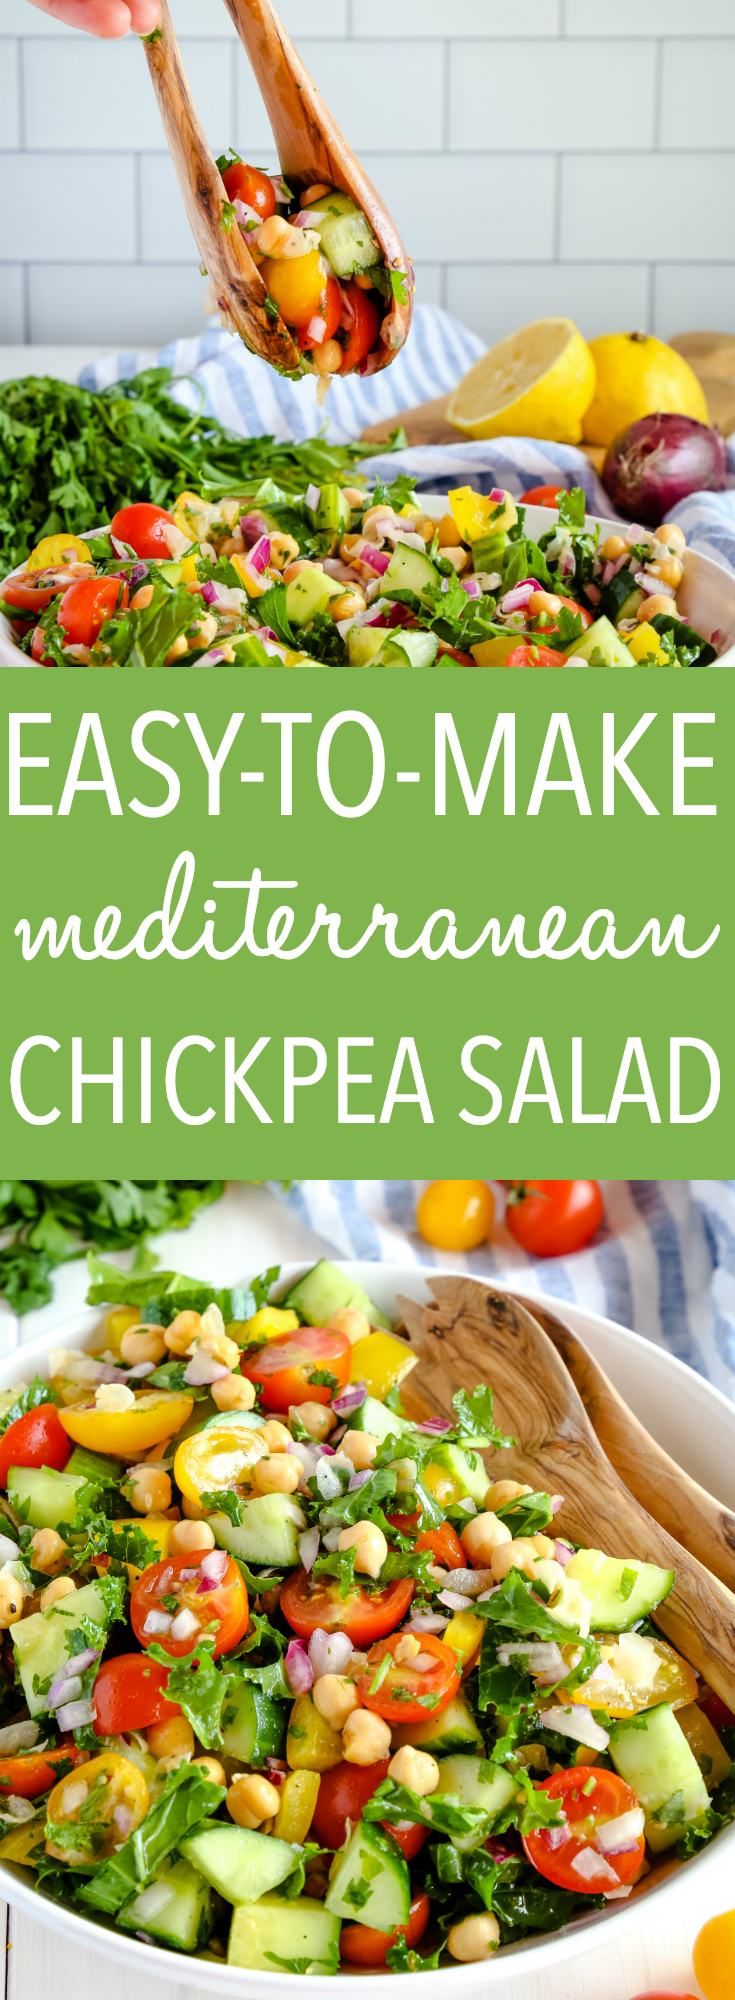 This Easy Mediterranean Chickpea Salad is the perfect make-ahead lunch for busy work or school days, and it makes a great healthy vegetarian side dish or main dish too! Recipe from thebusybaker.ca! #newyearnewyou #recipe #healthy #easy #salad #vegetarian #vegan #lunch #makeahead #chickpeasalad #pulses #cleaneating #eatclean via @busybakerblog